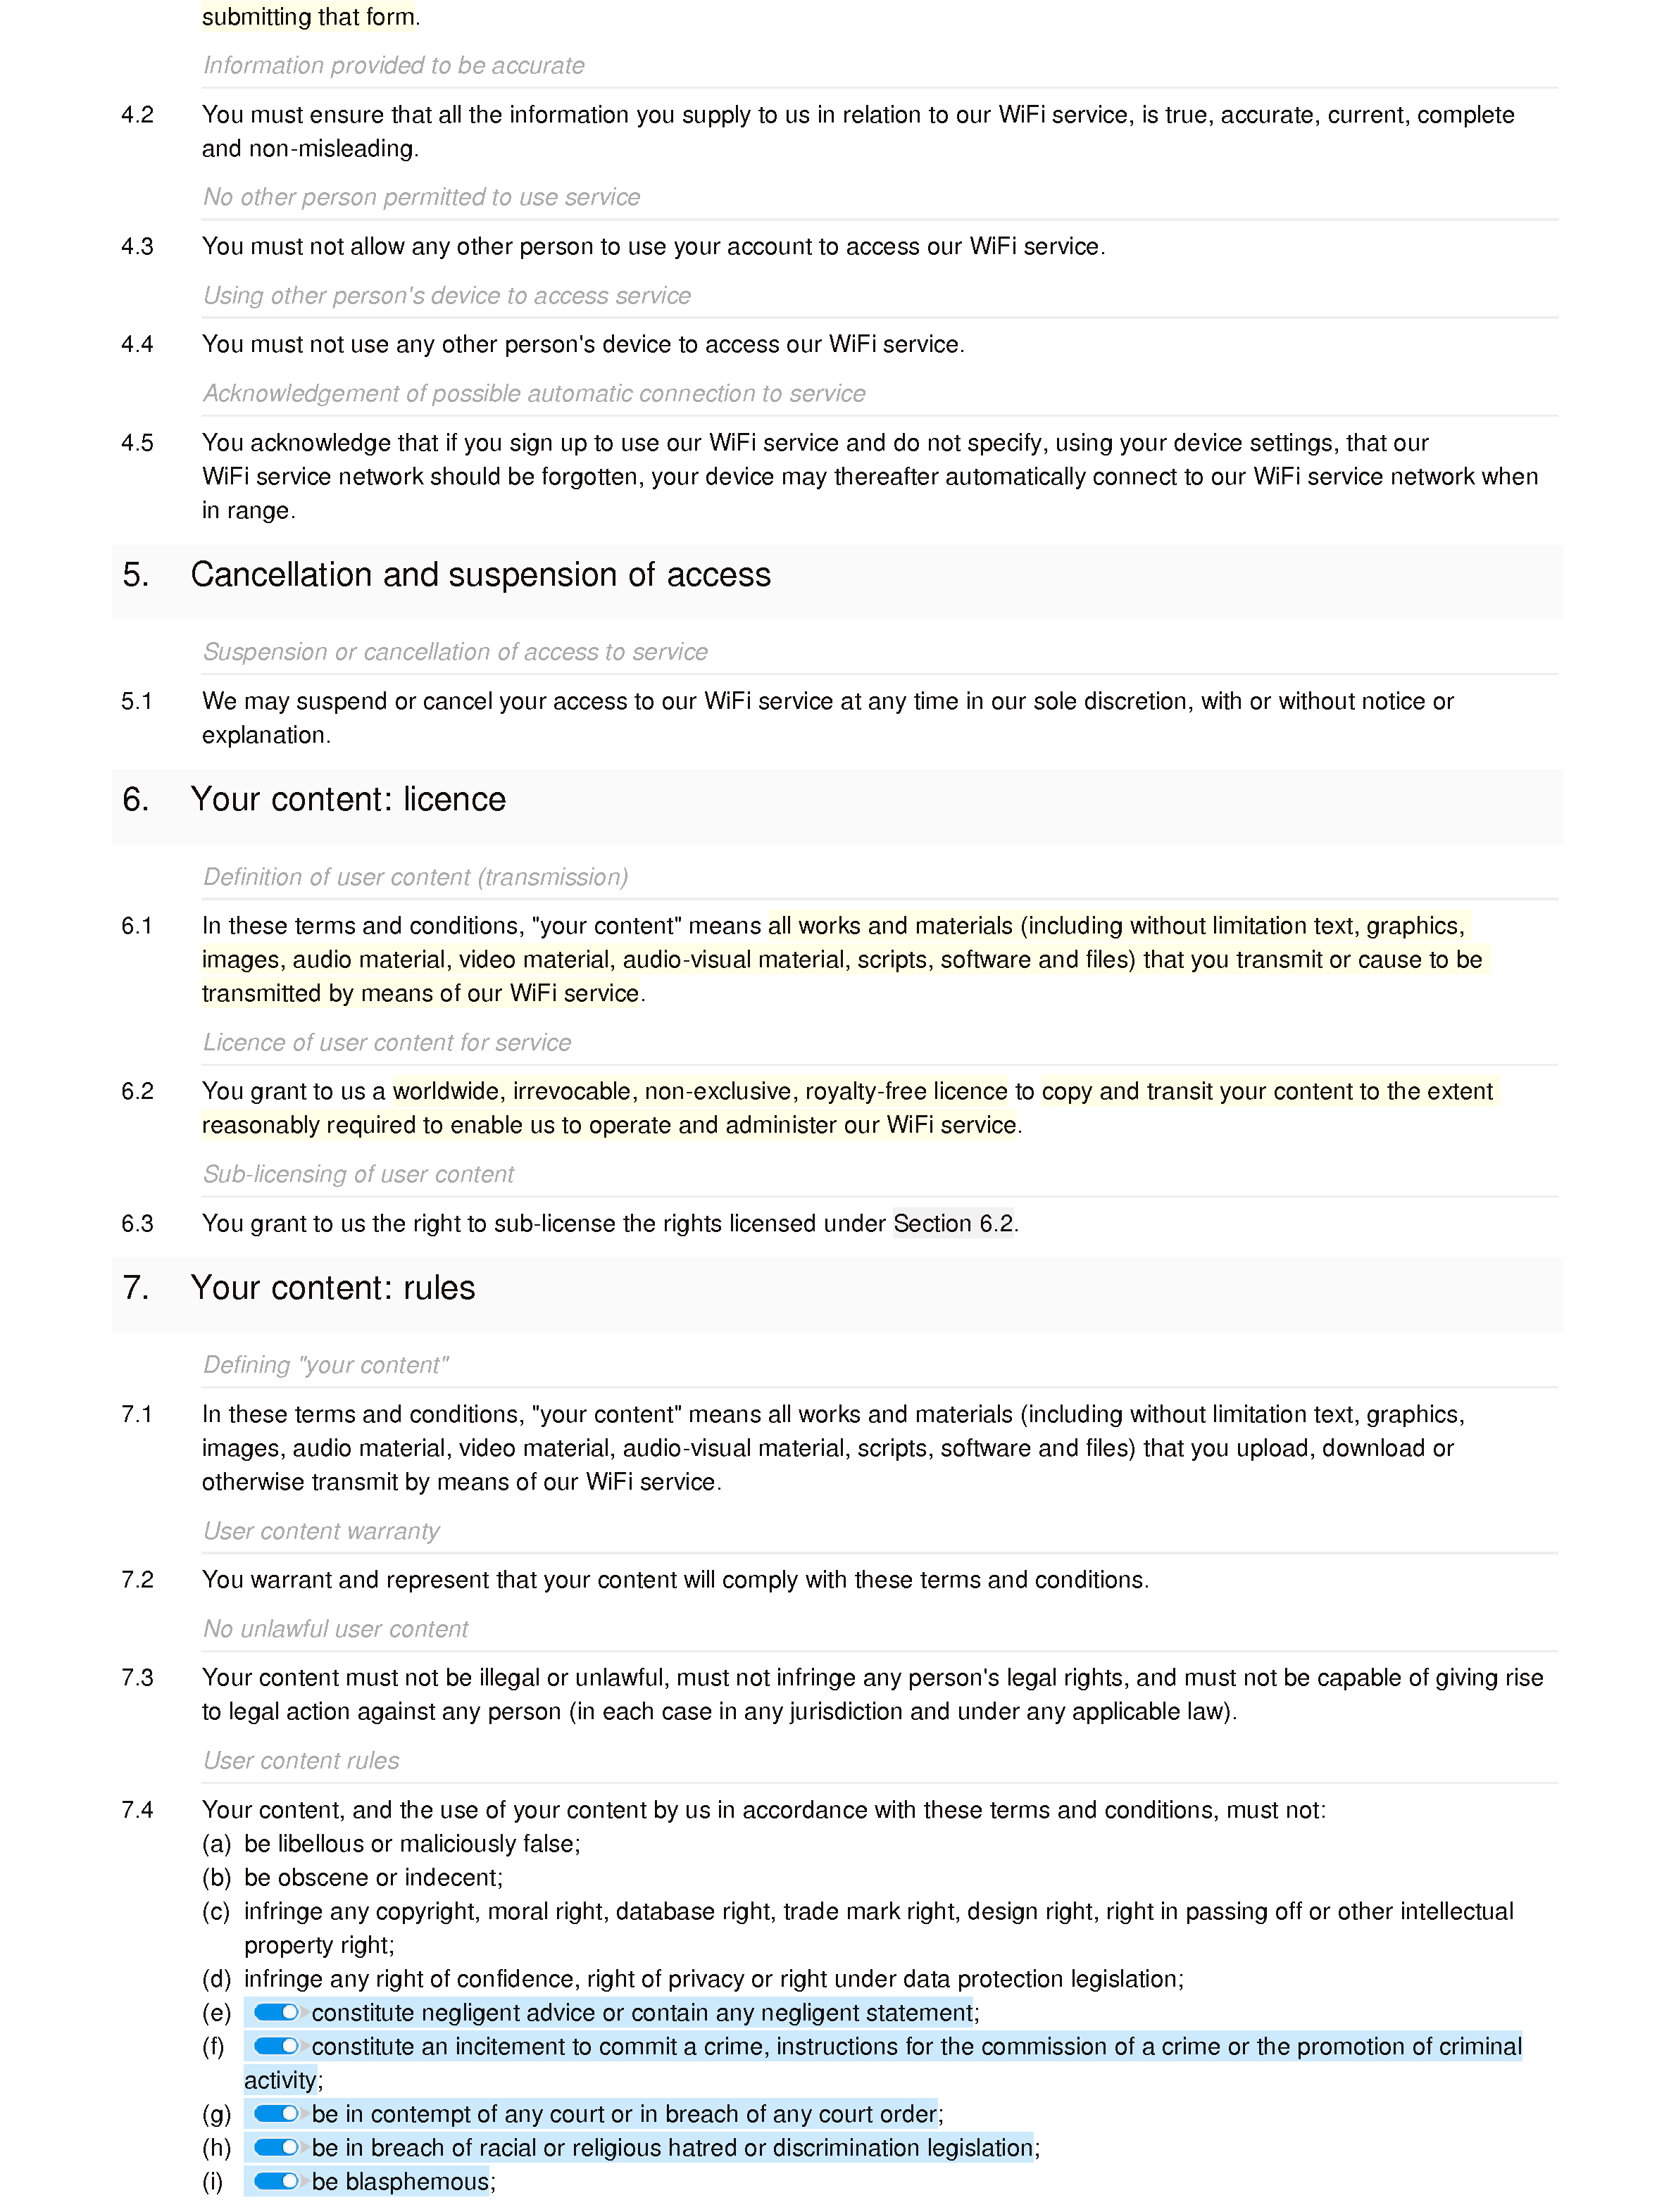 WiFi terms and conditions document editor preview